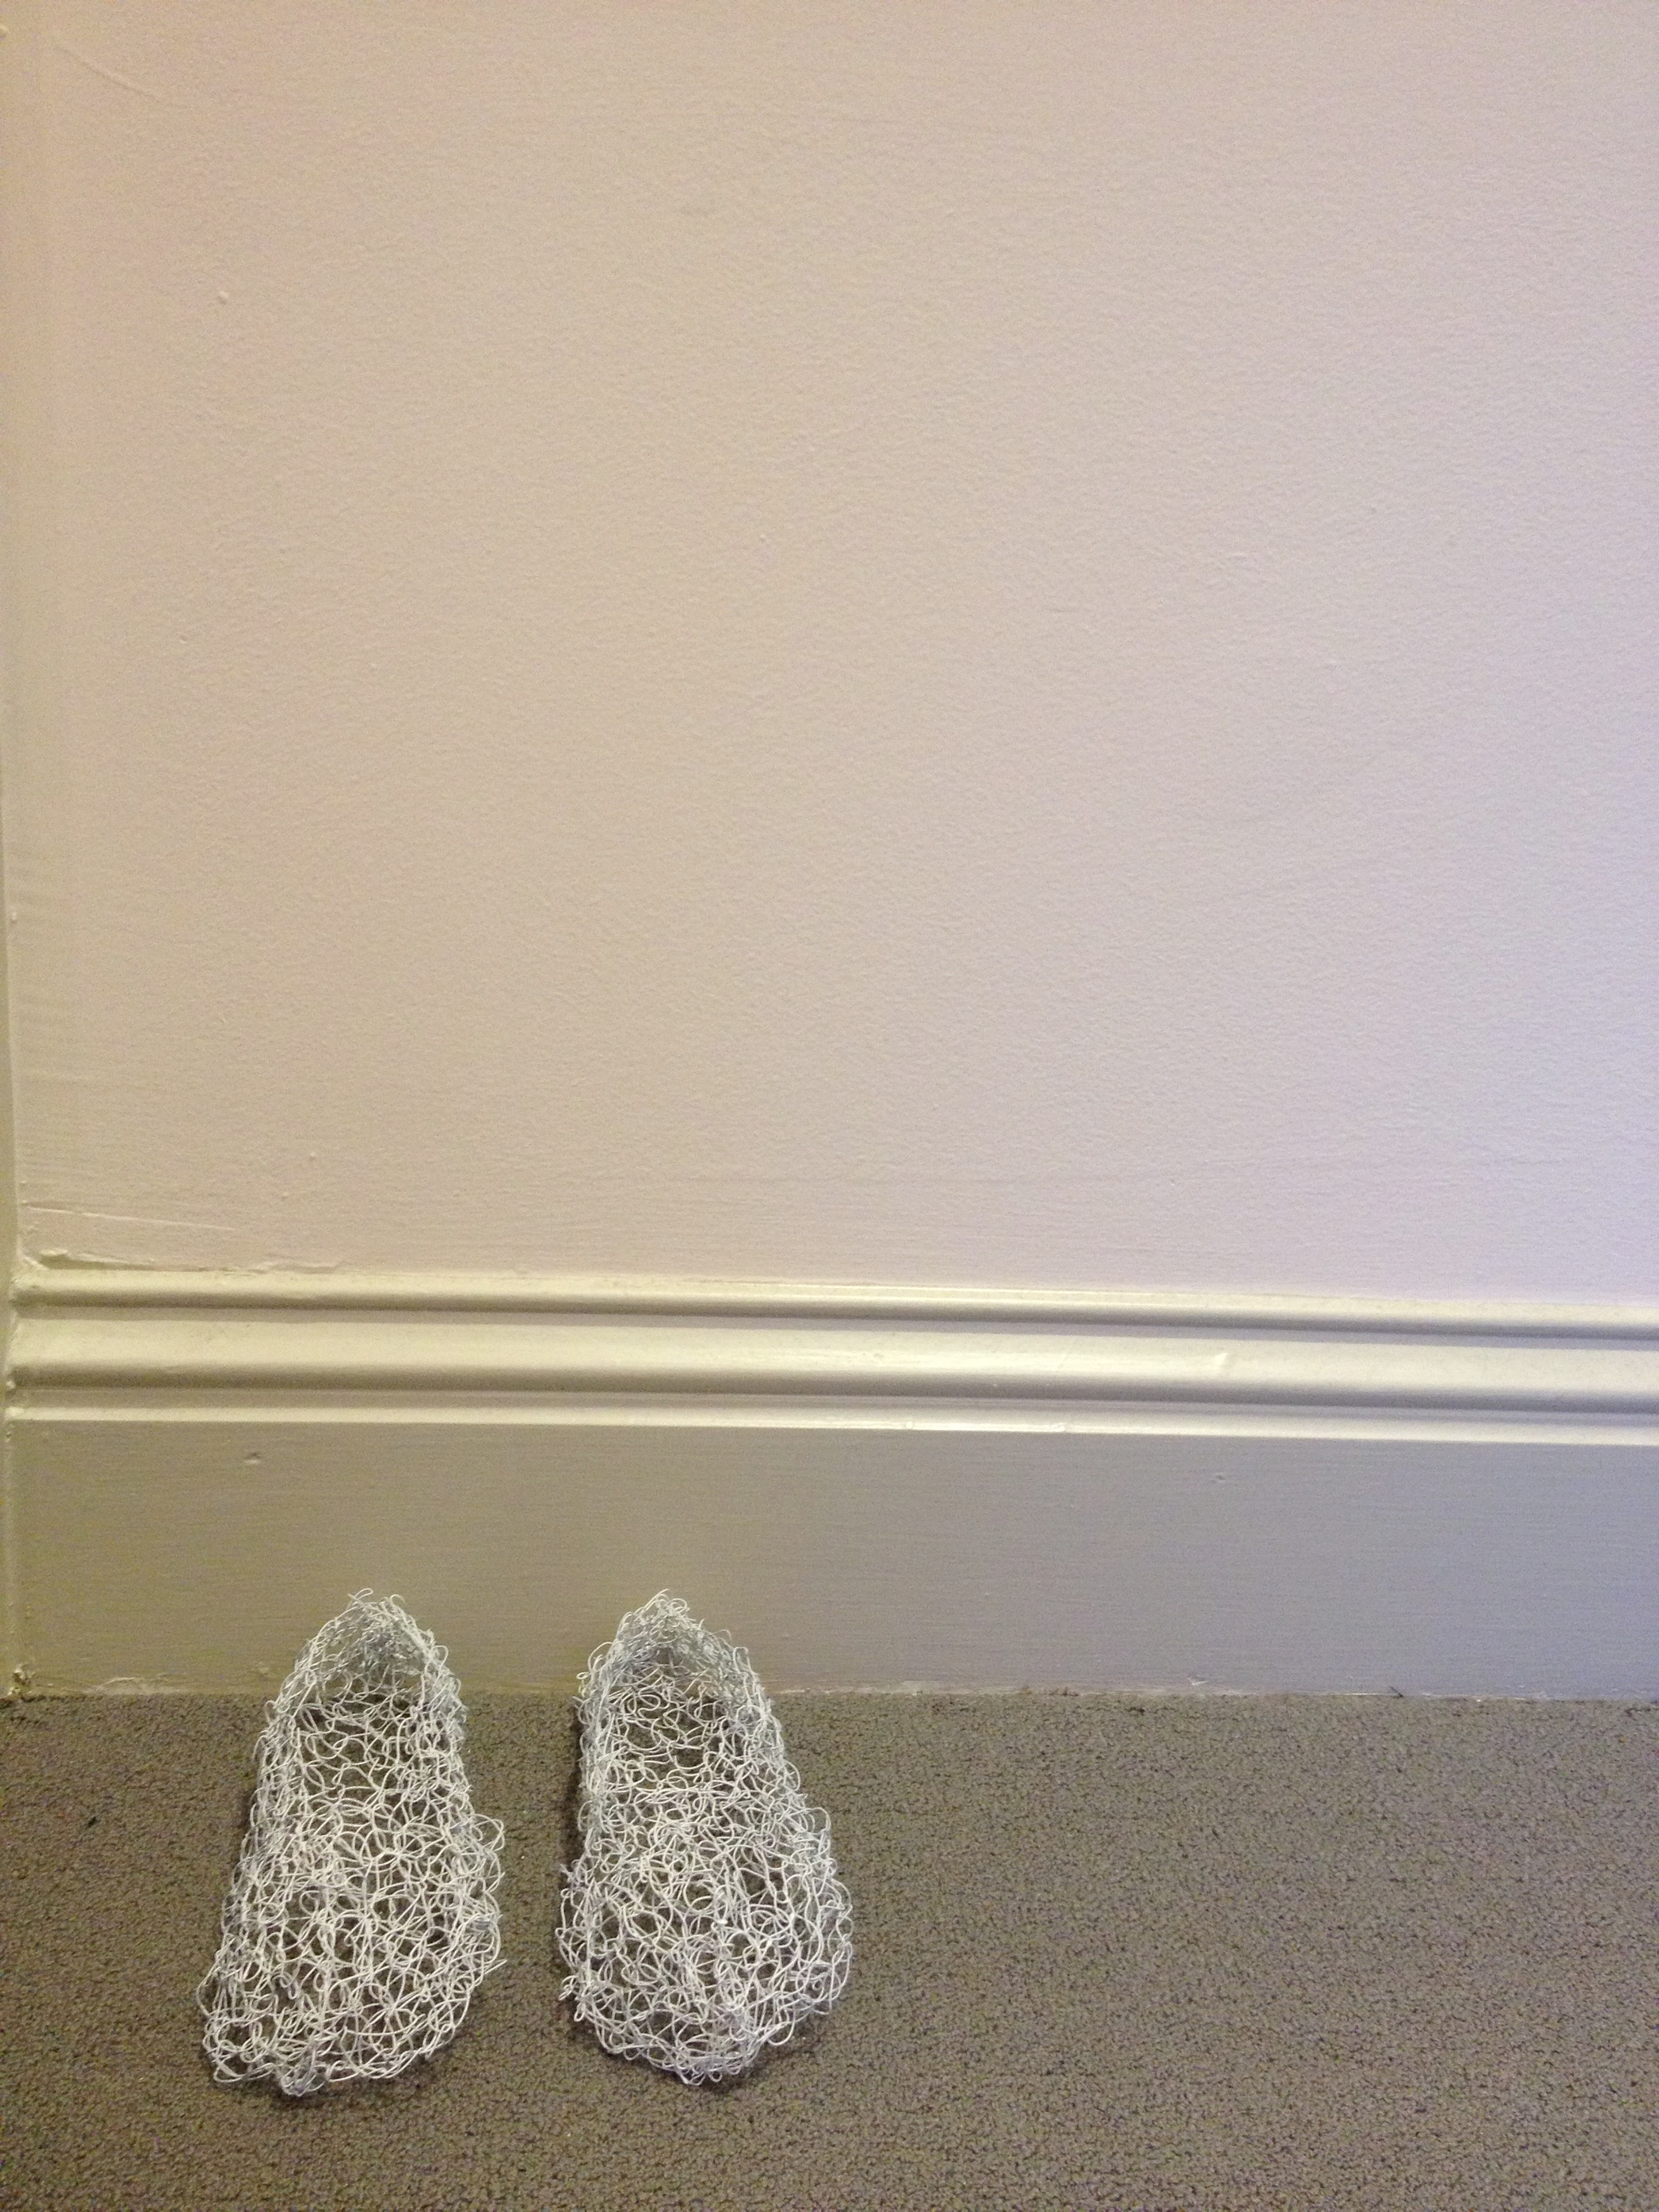 Untitled (Slippers)